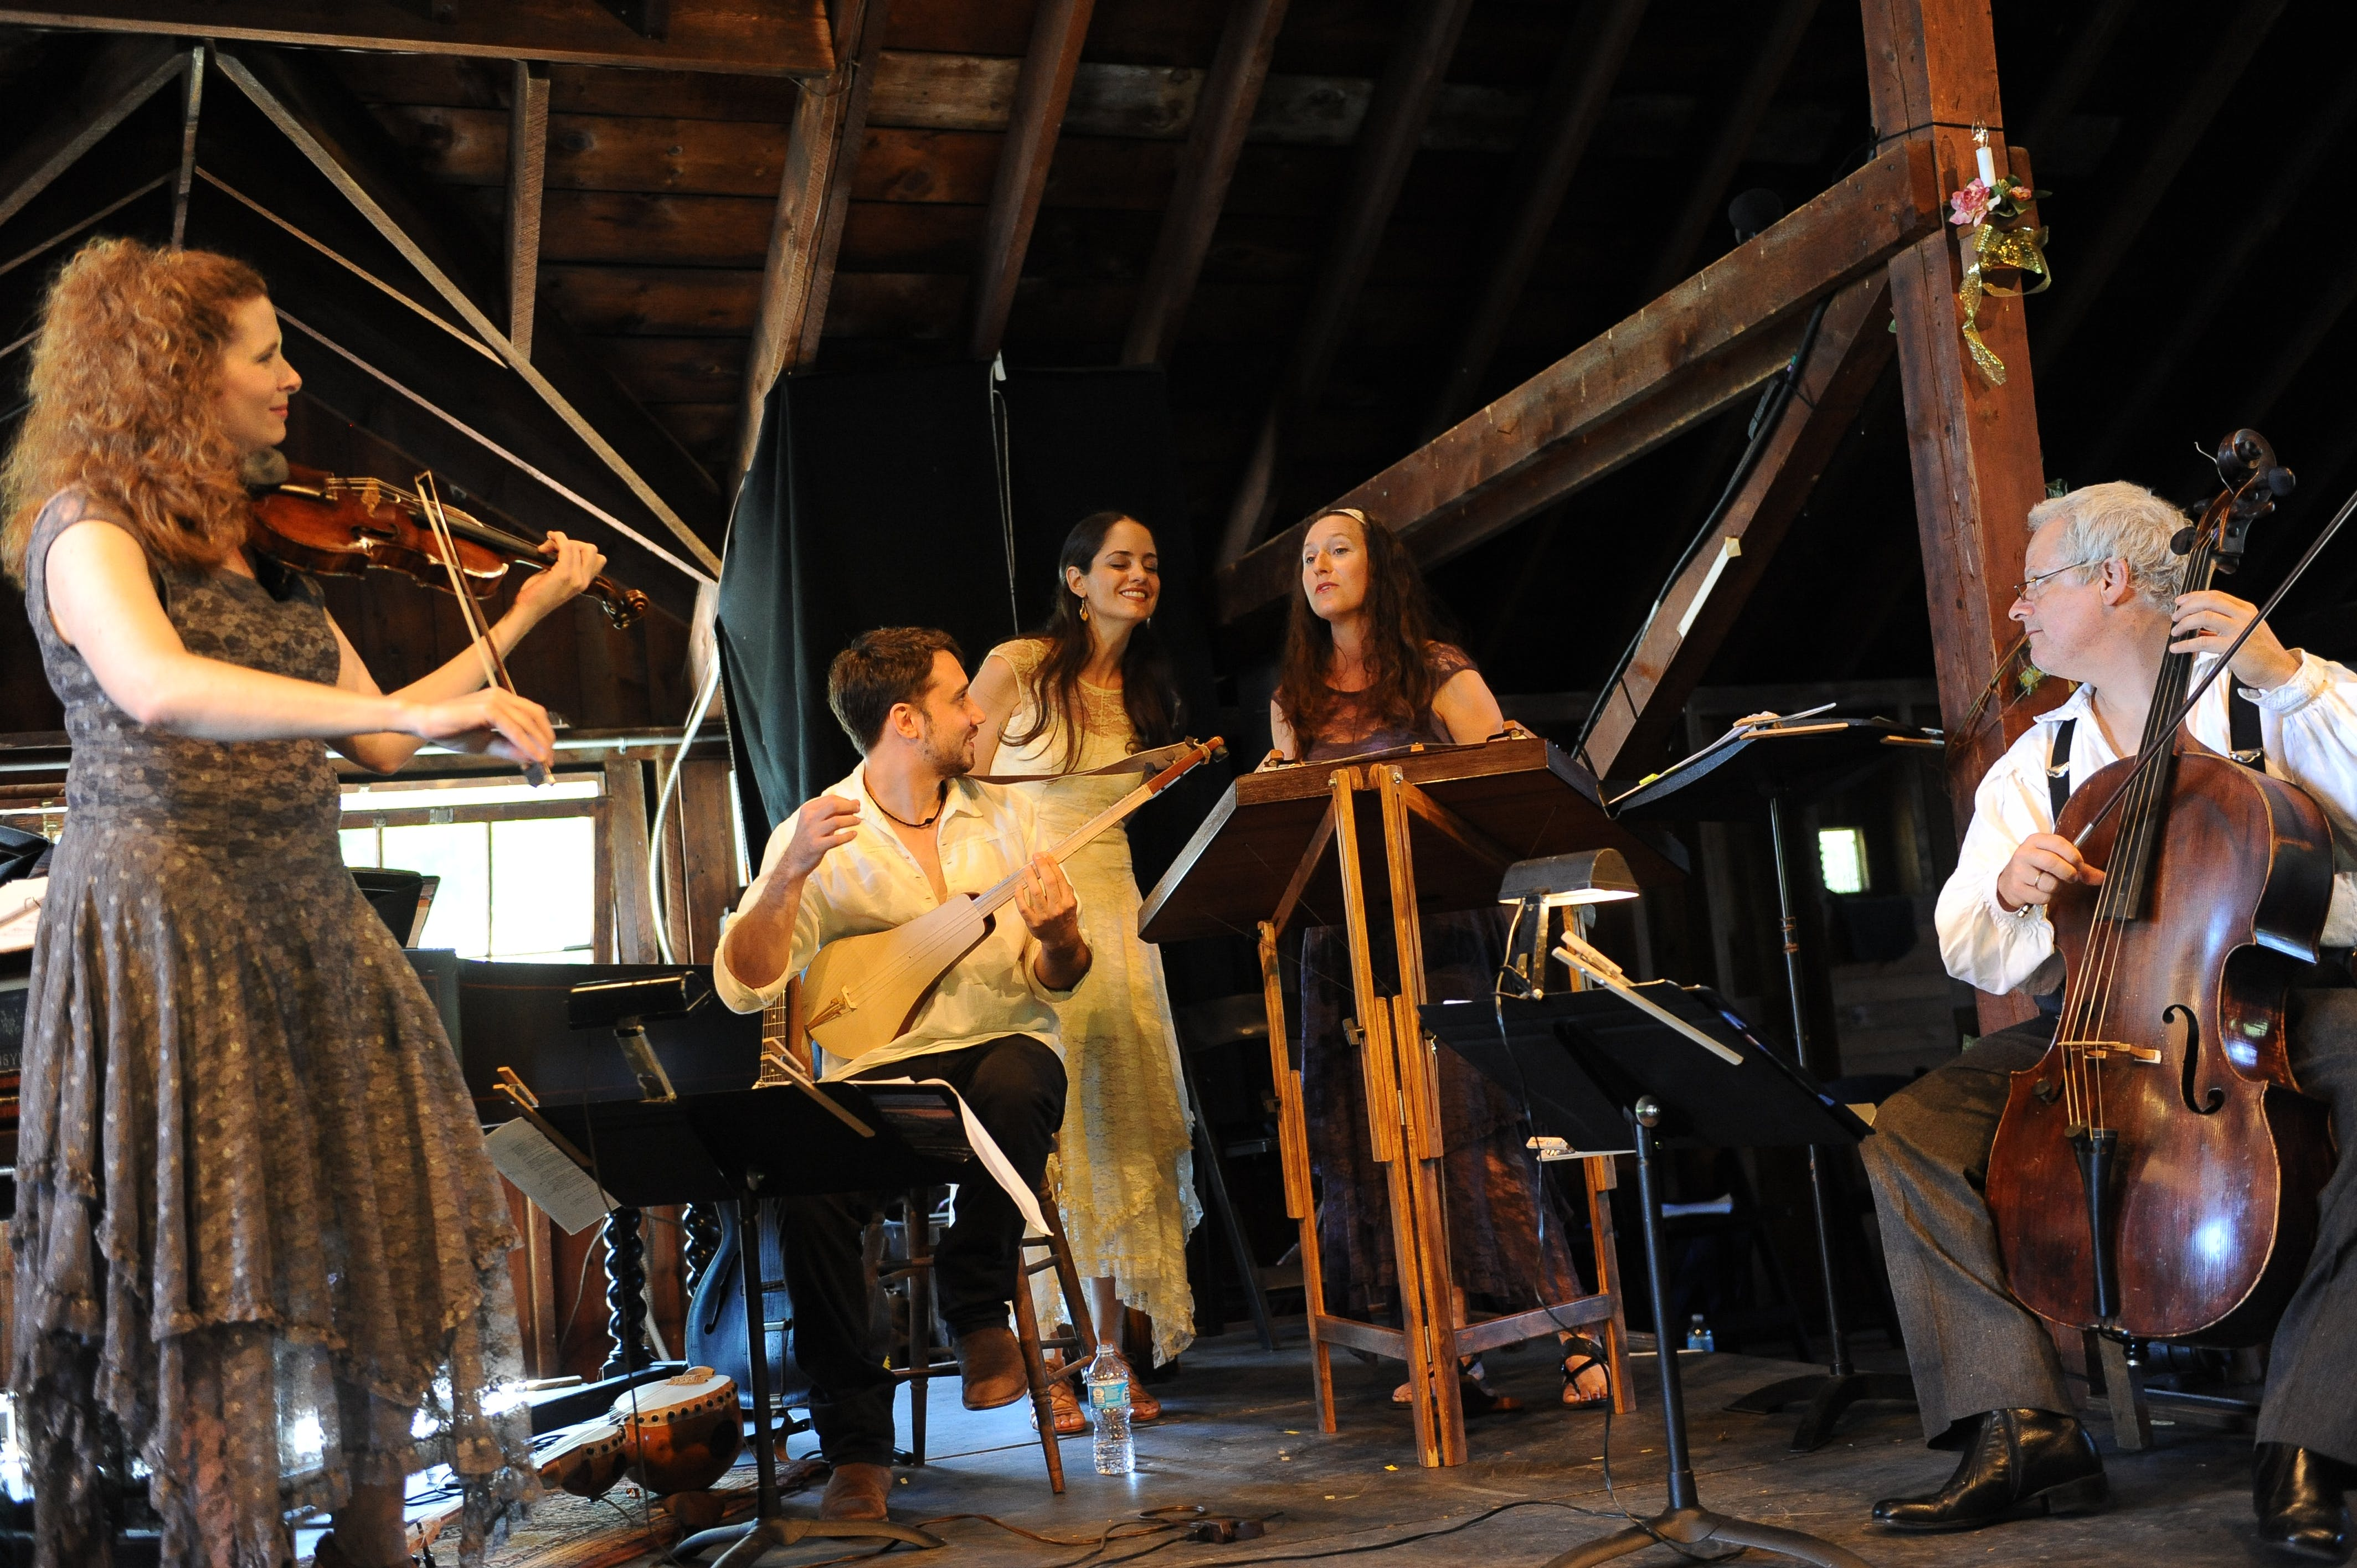 <p><em>Photo courtesy of Apollo&rsquo;s Fire Baroque Orchestra. Photo by Debra-Lynn Hook. </em></p>